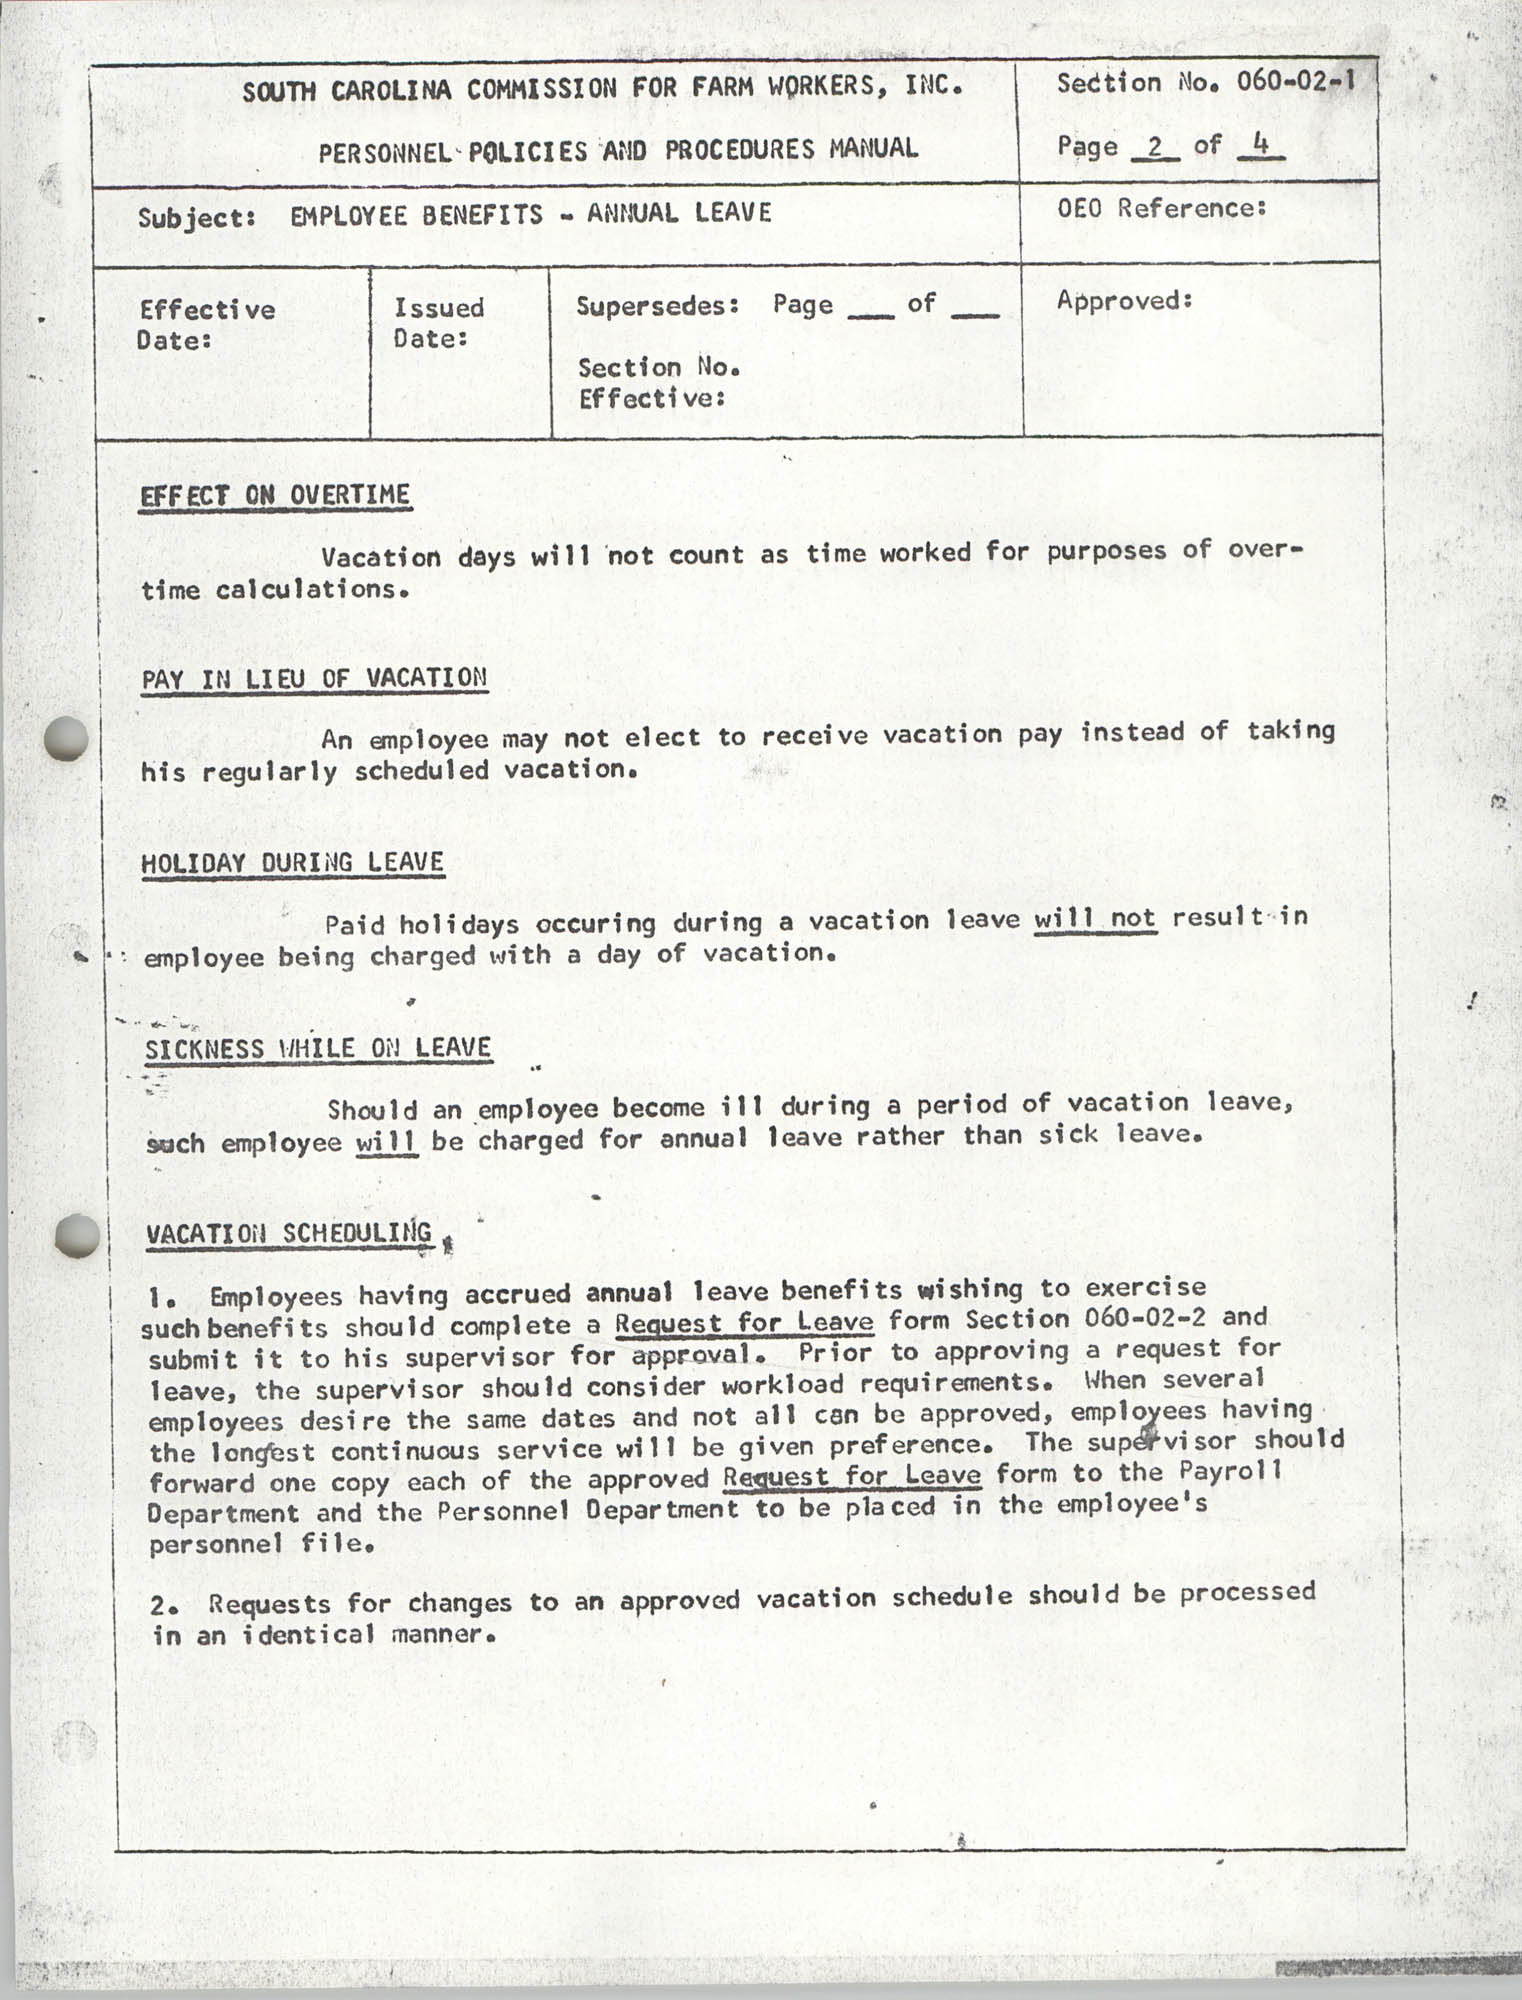 Personnel Policies and Procedures Manual, Section No. 060-02-1, Page 2